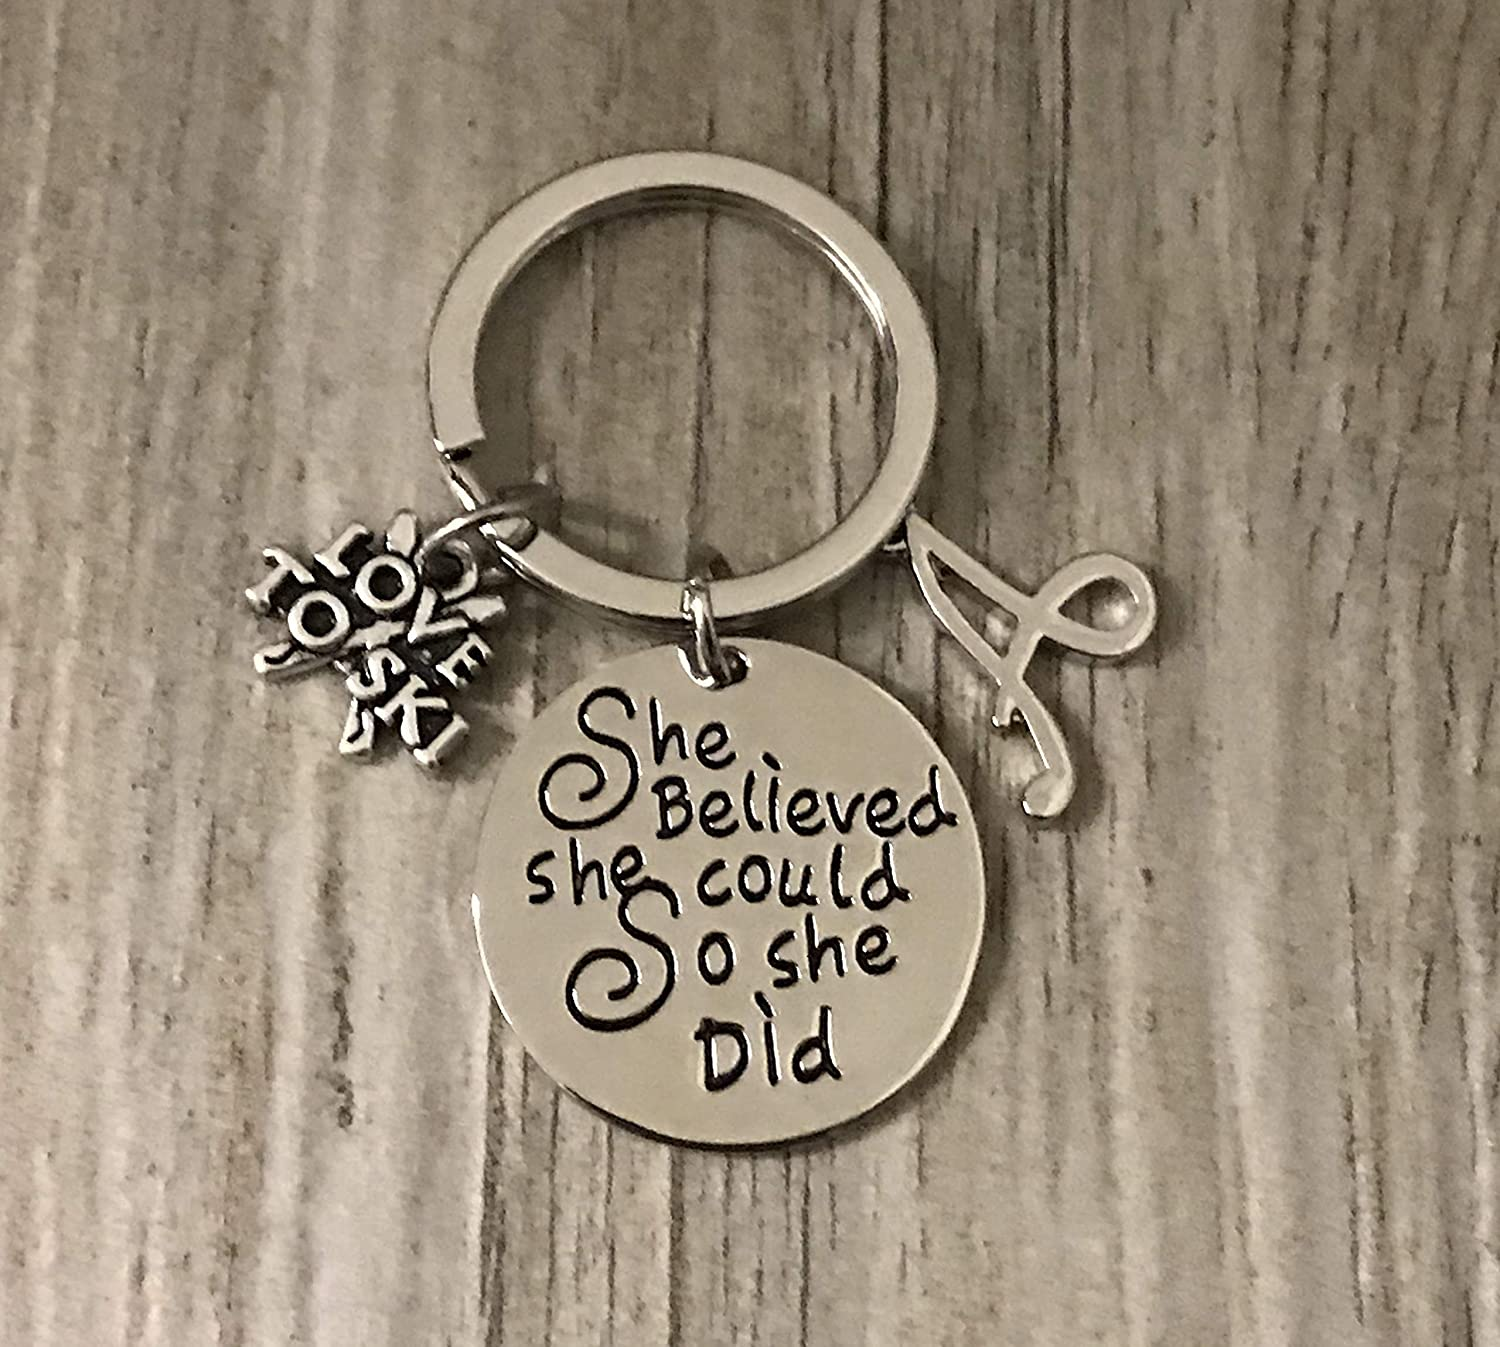 Personalized Limited time sale Ski Charm Keychain with She Letter Discount mail order Belie